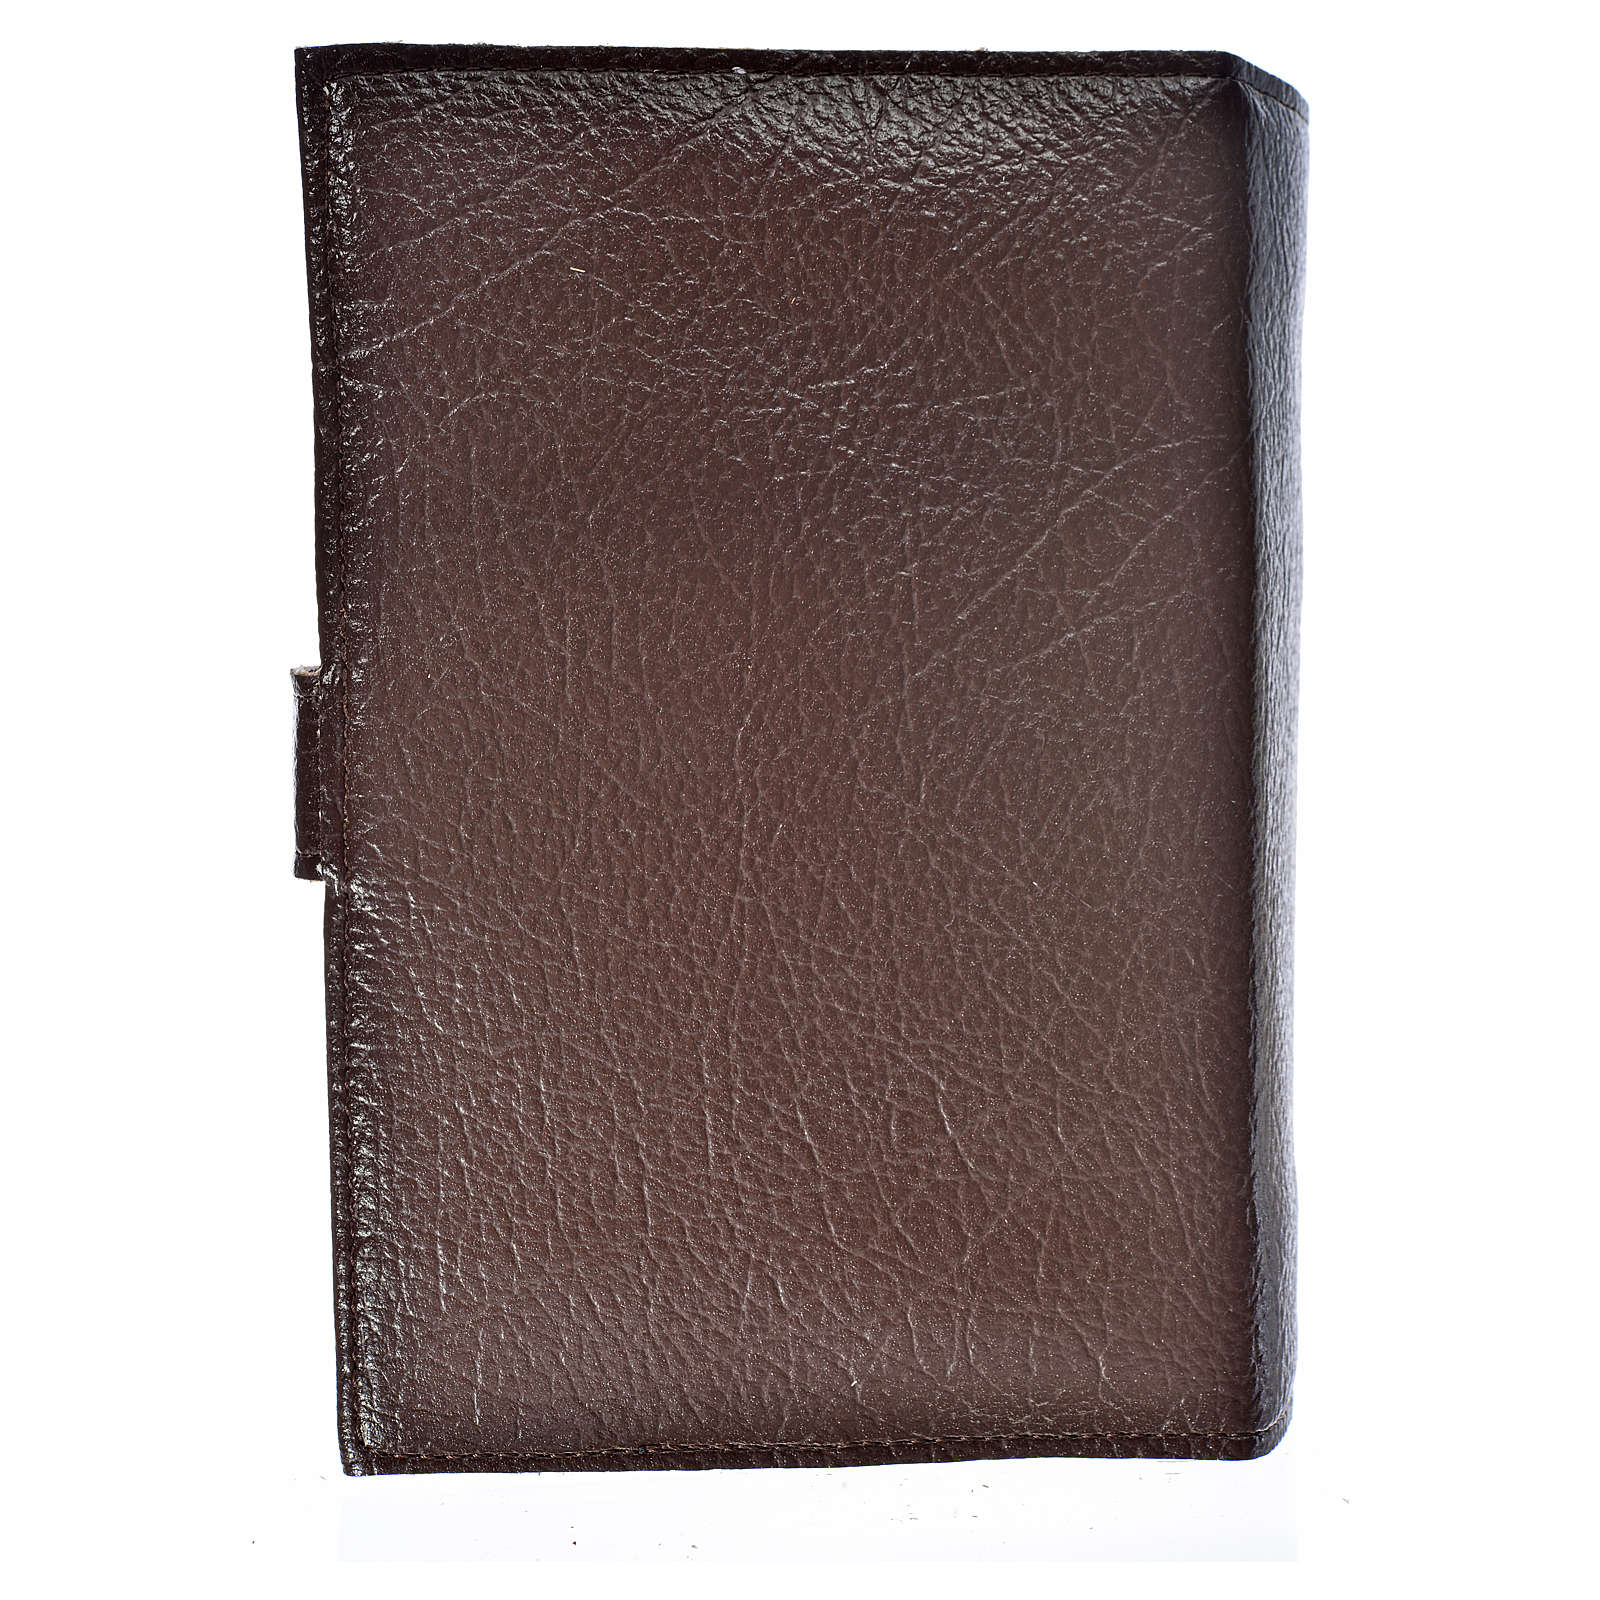 Cover for the Divine Office dark brown bonded leather Our Lady 4